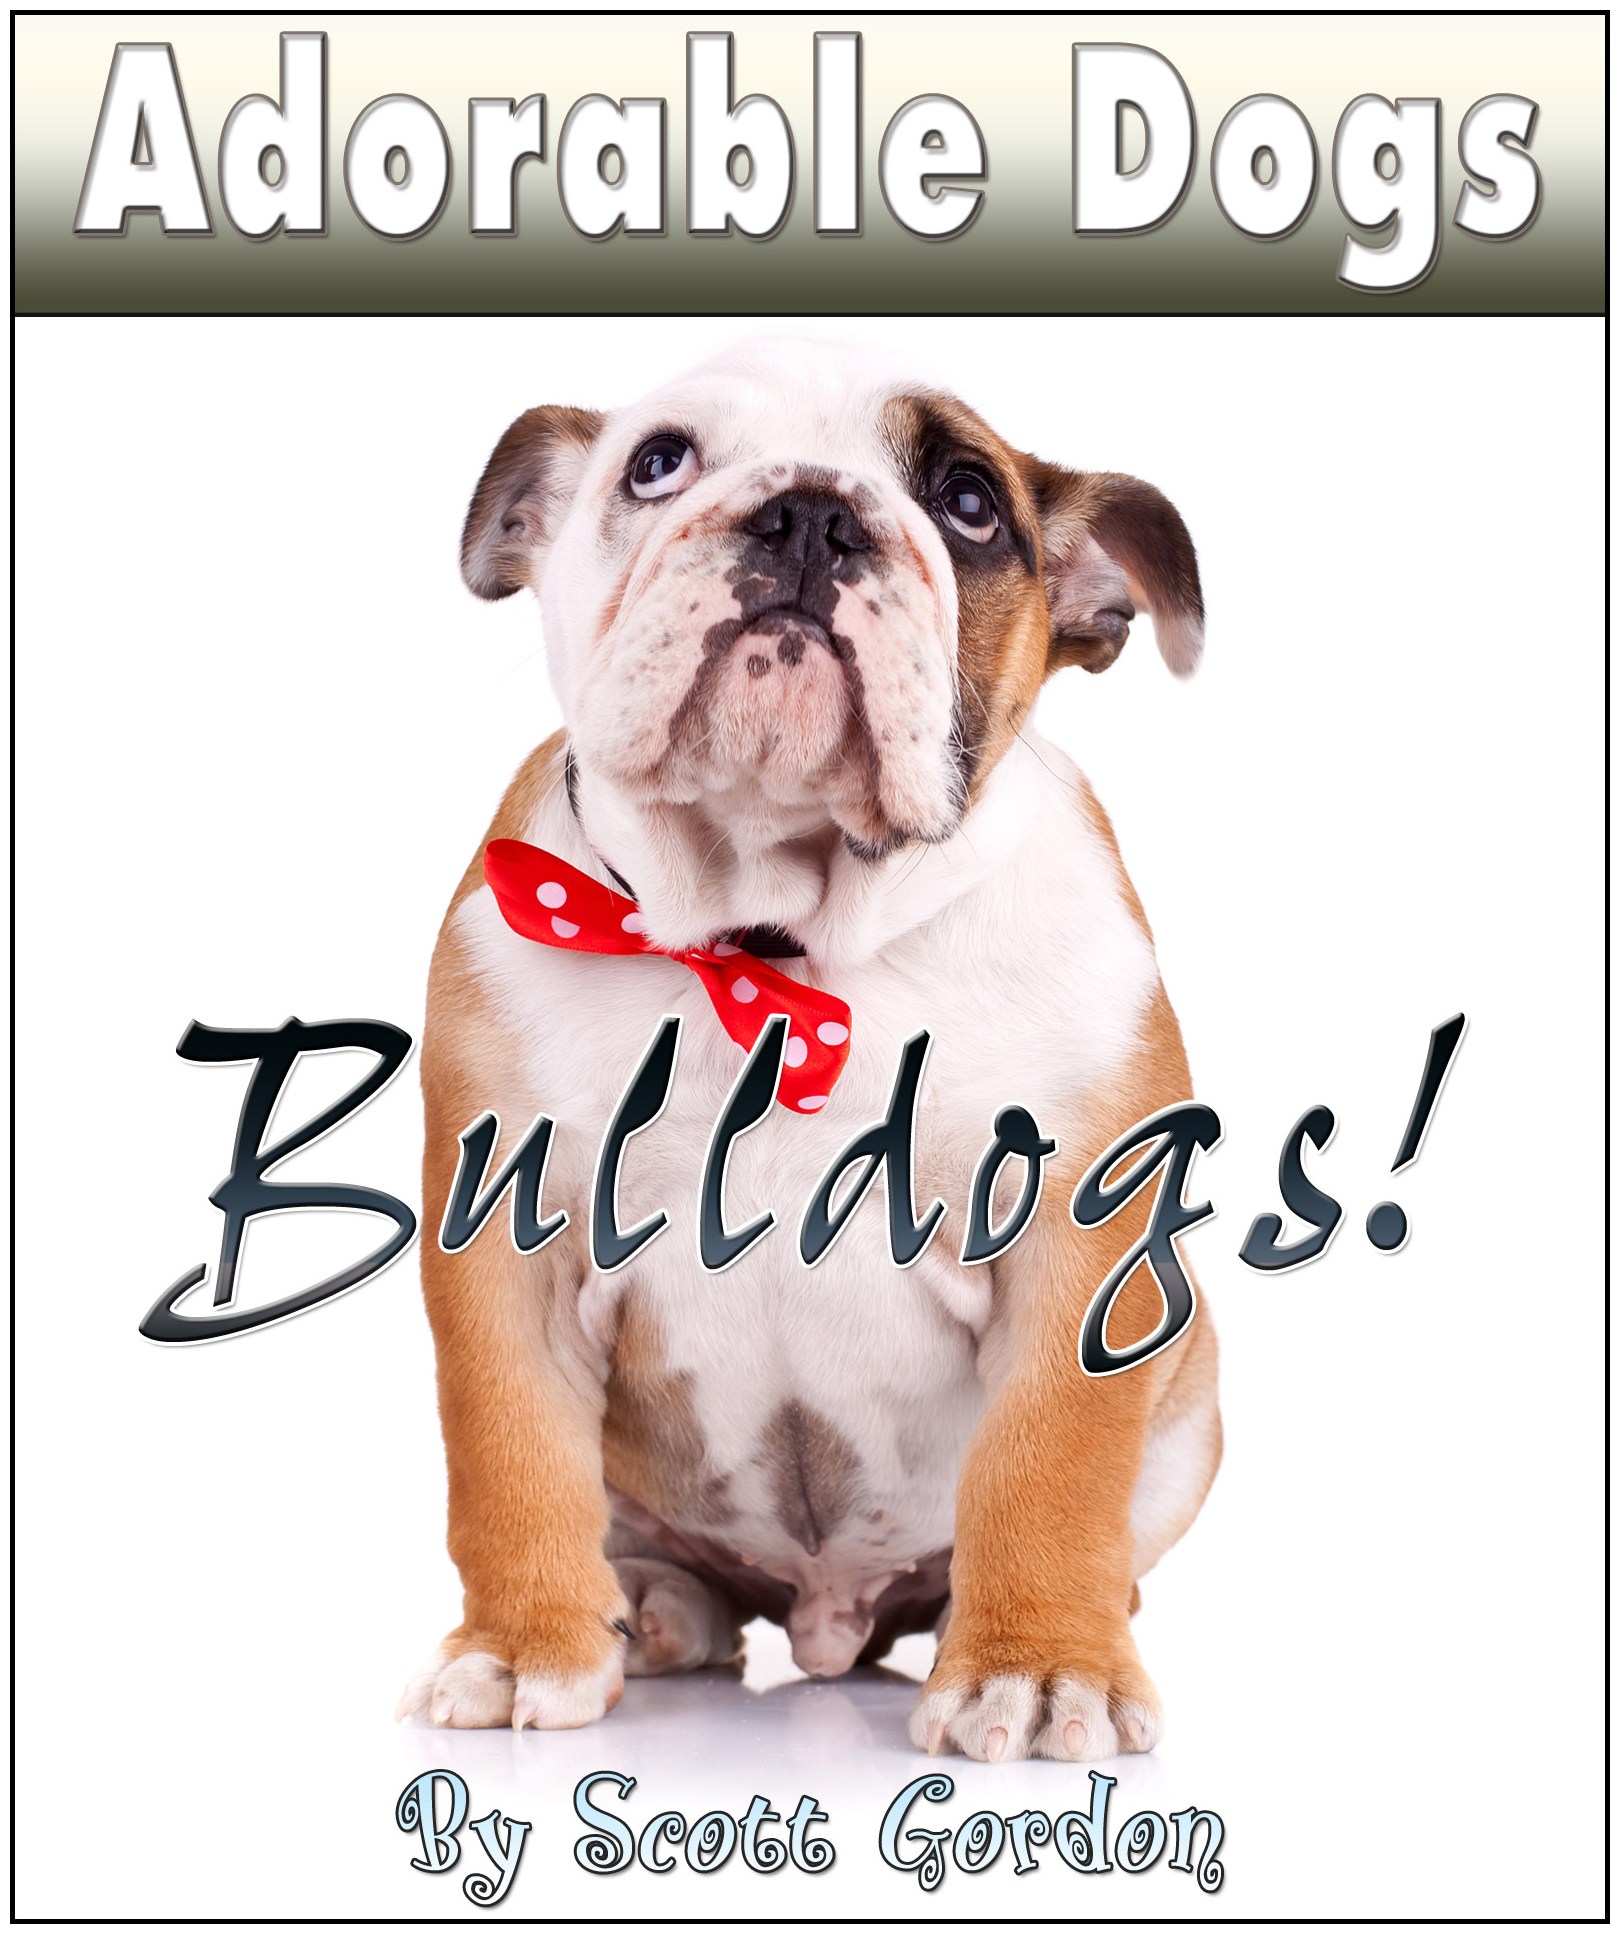 Adorable Dogs: Bulldogs!